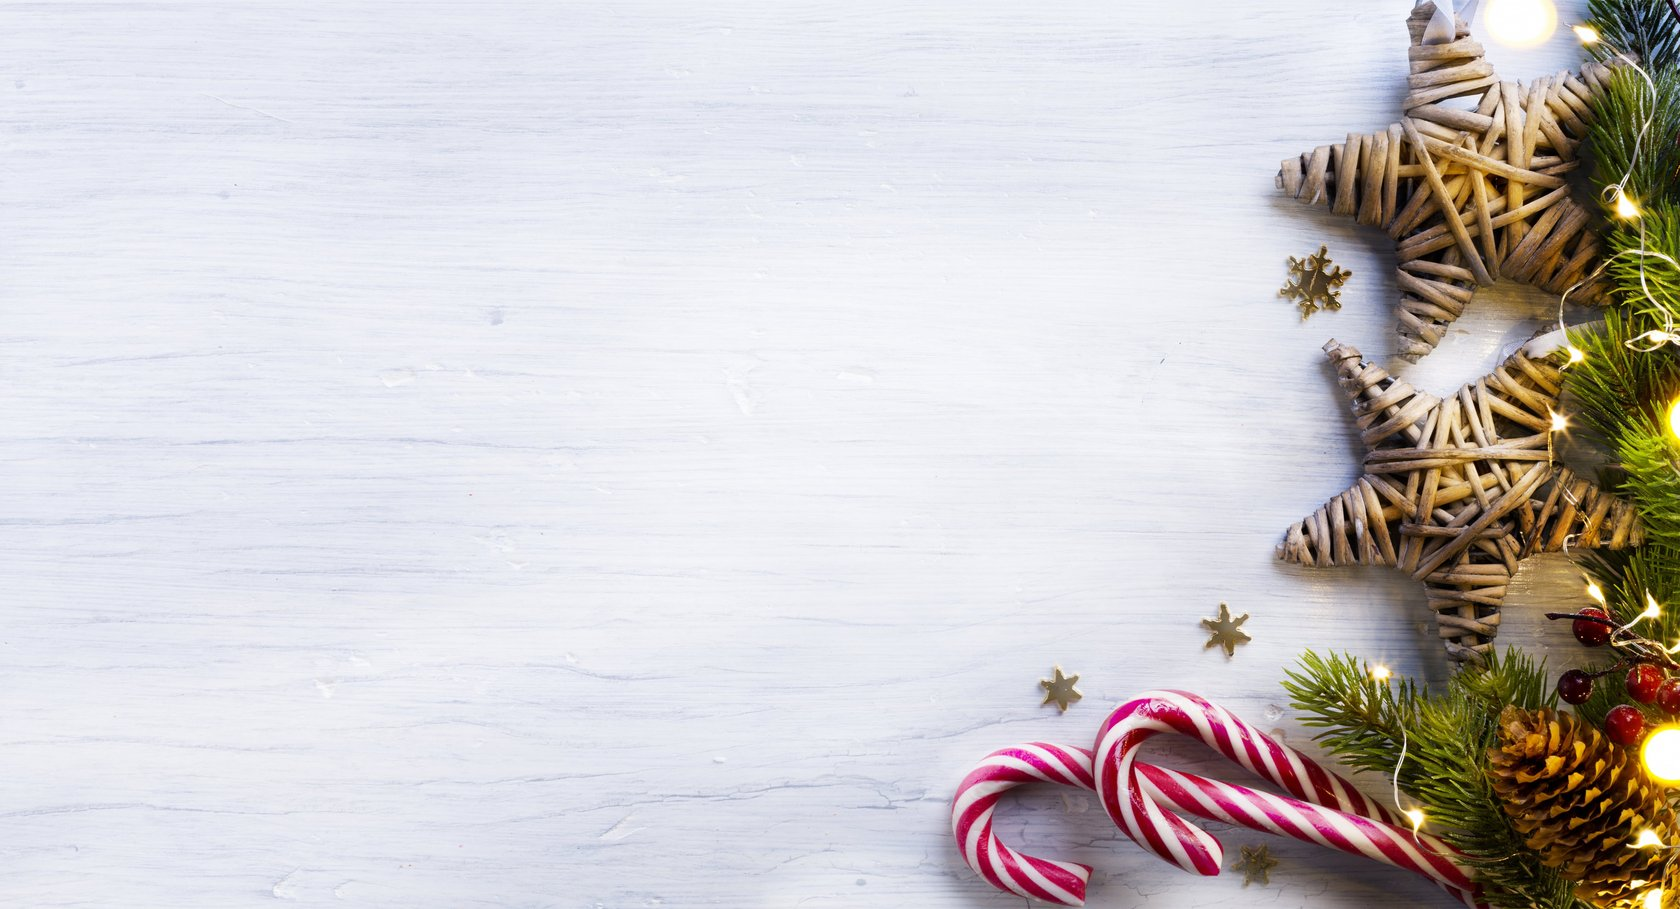 Christmas Backgrounds.3 Basic Methods For Christmas Background Photography With